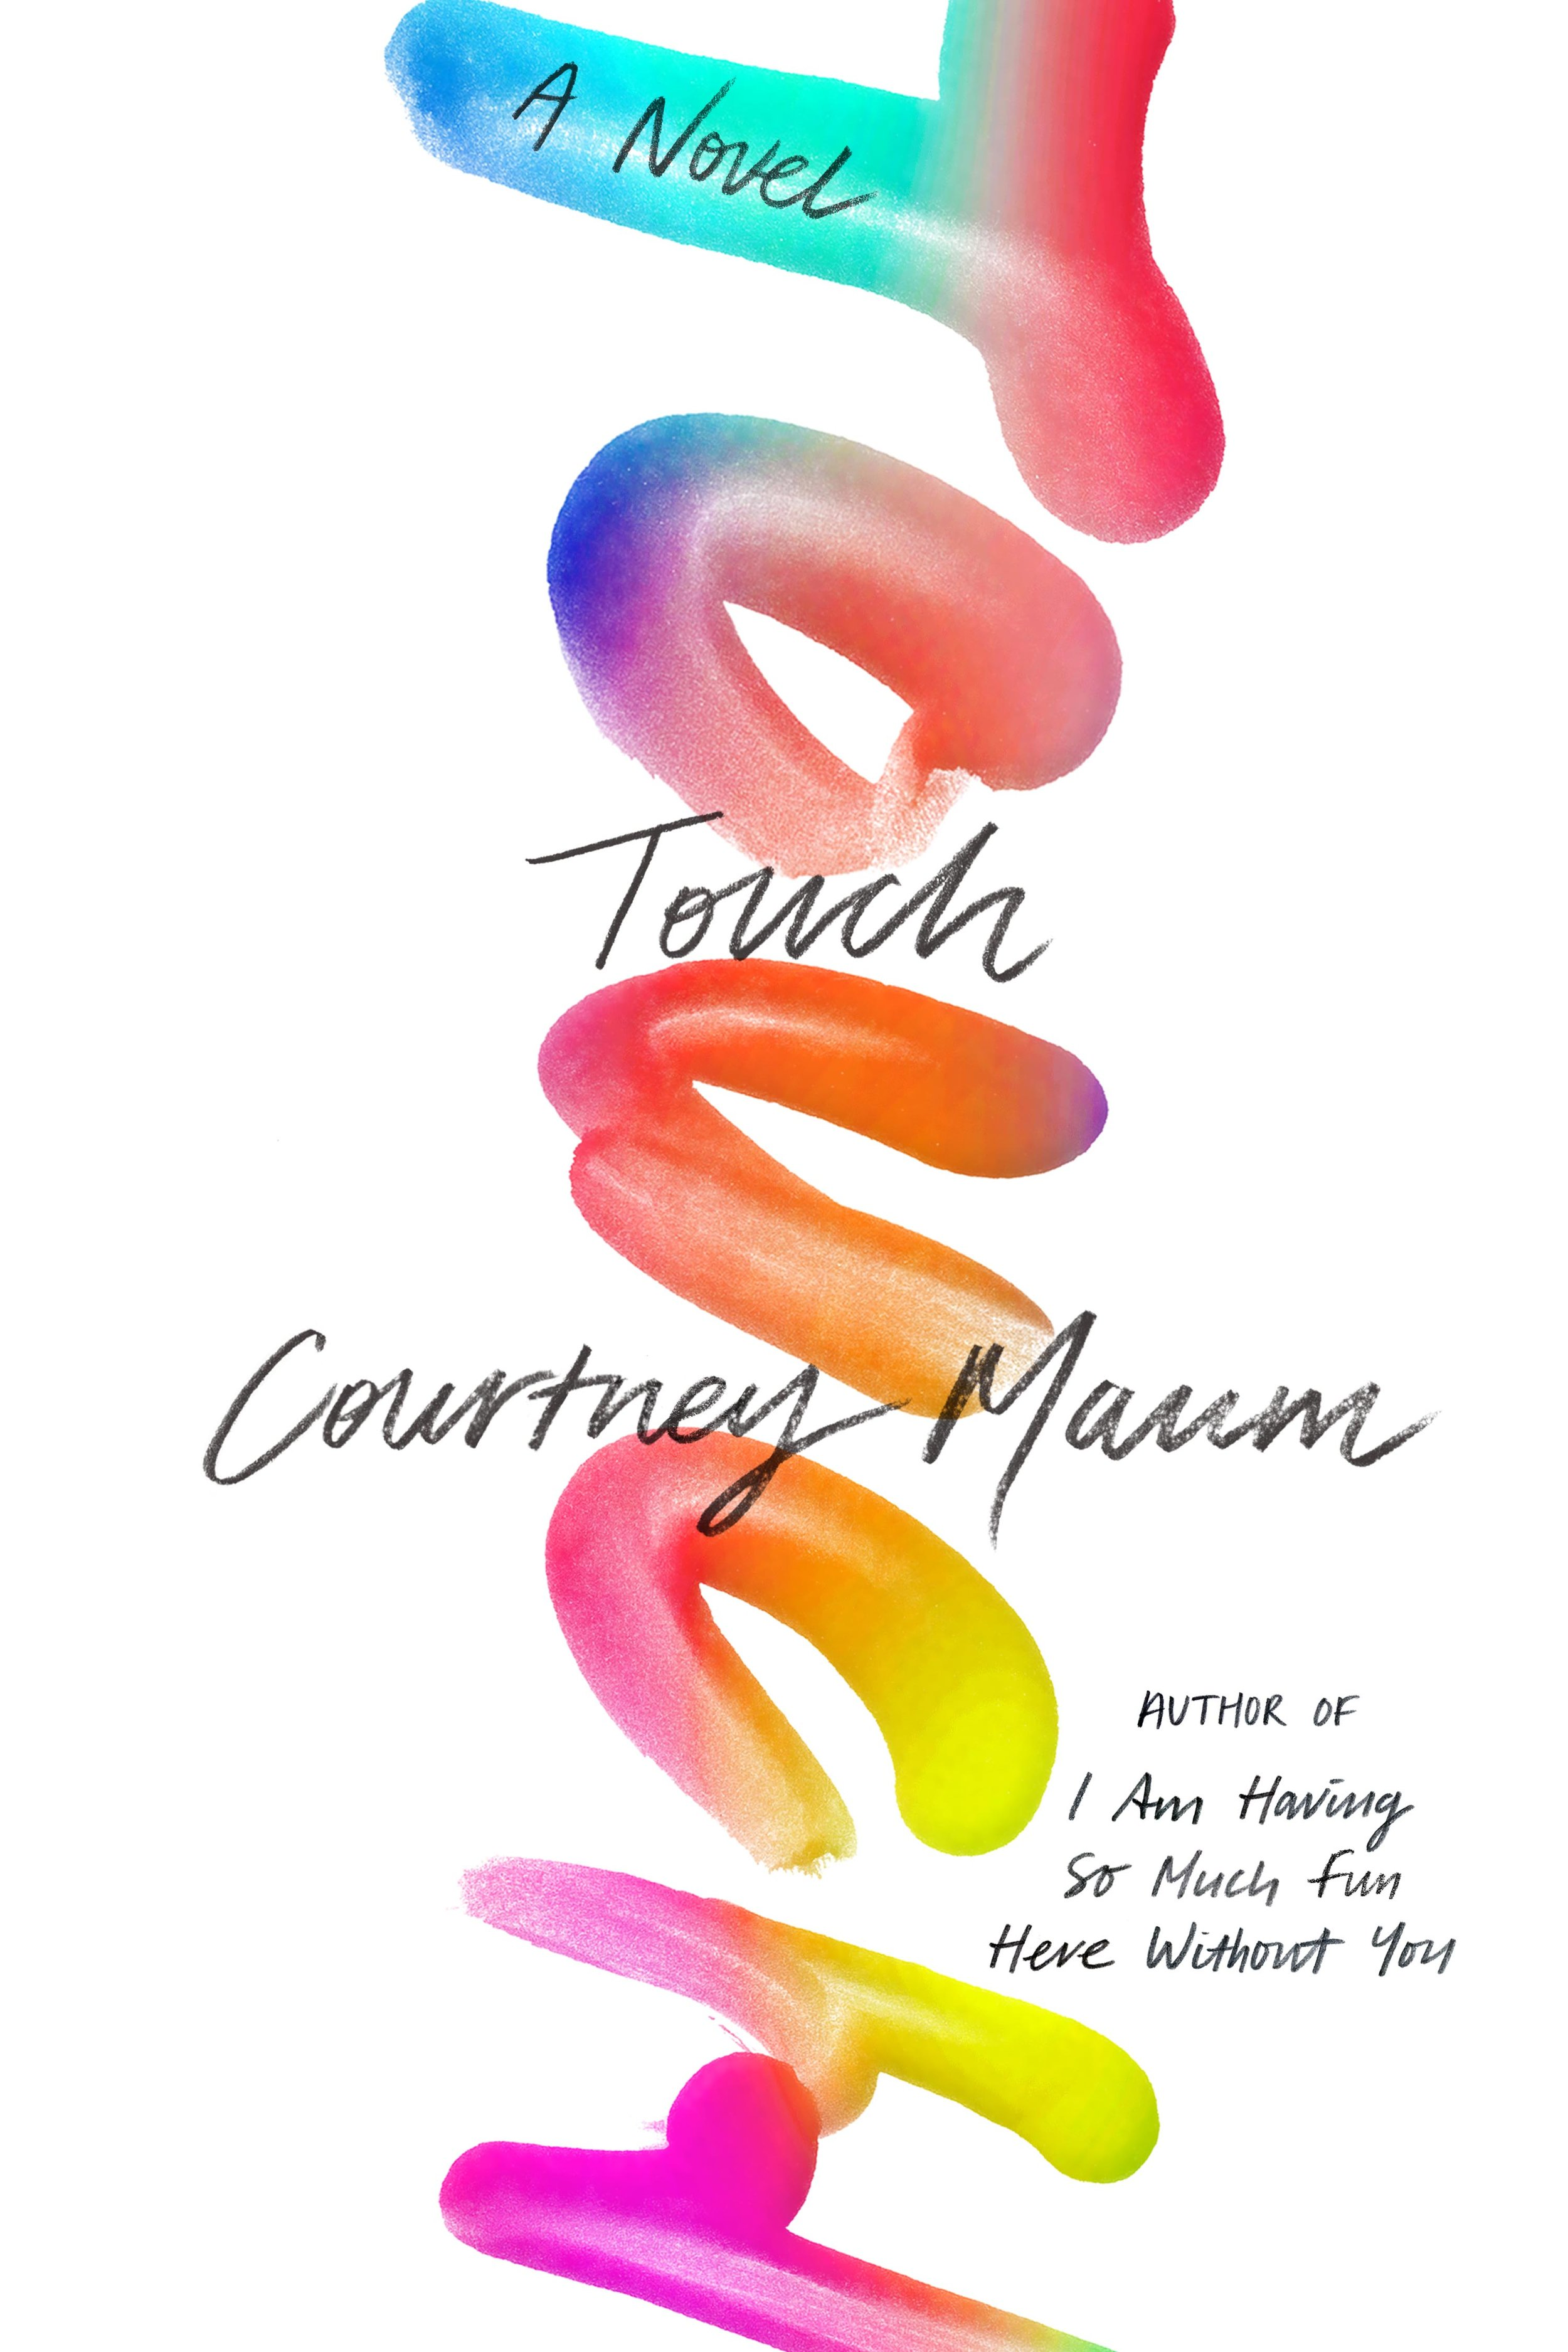 5 Books to Read that will Get You Through April Showers - 4) Touch by Courtney Maum